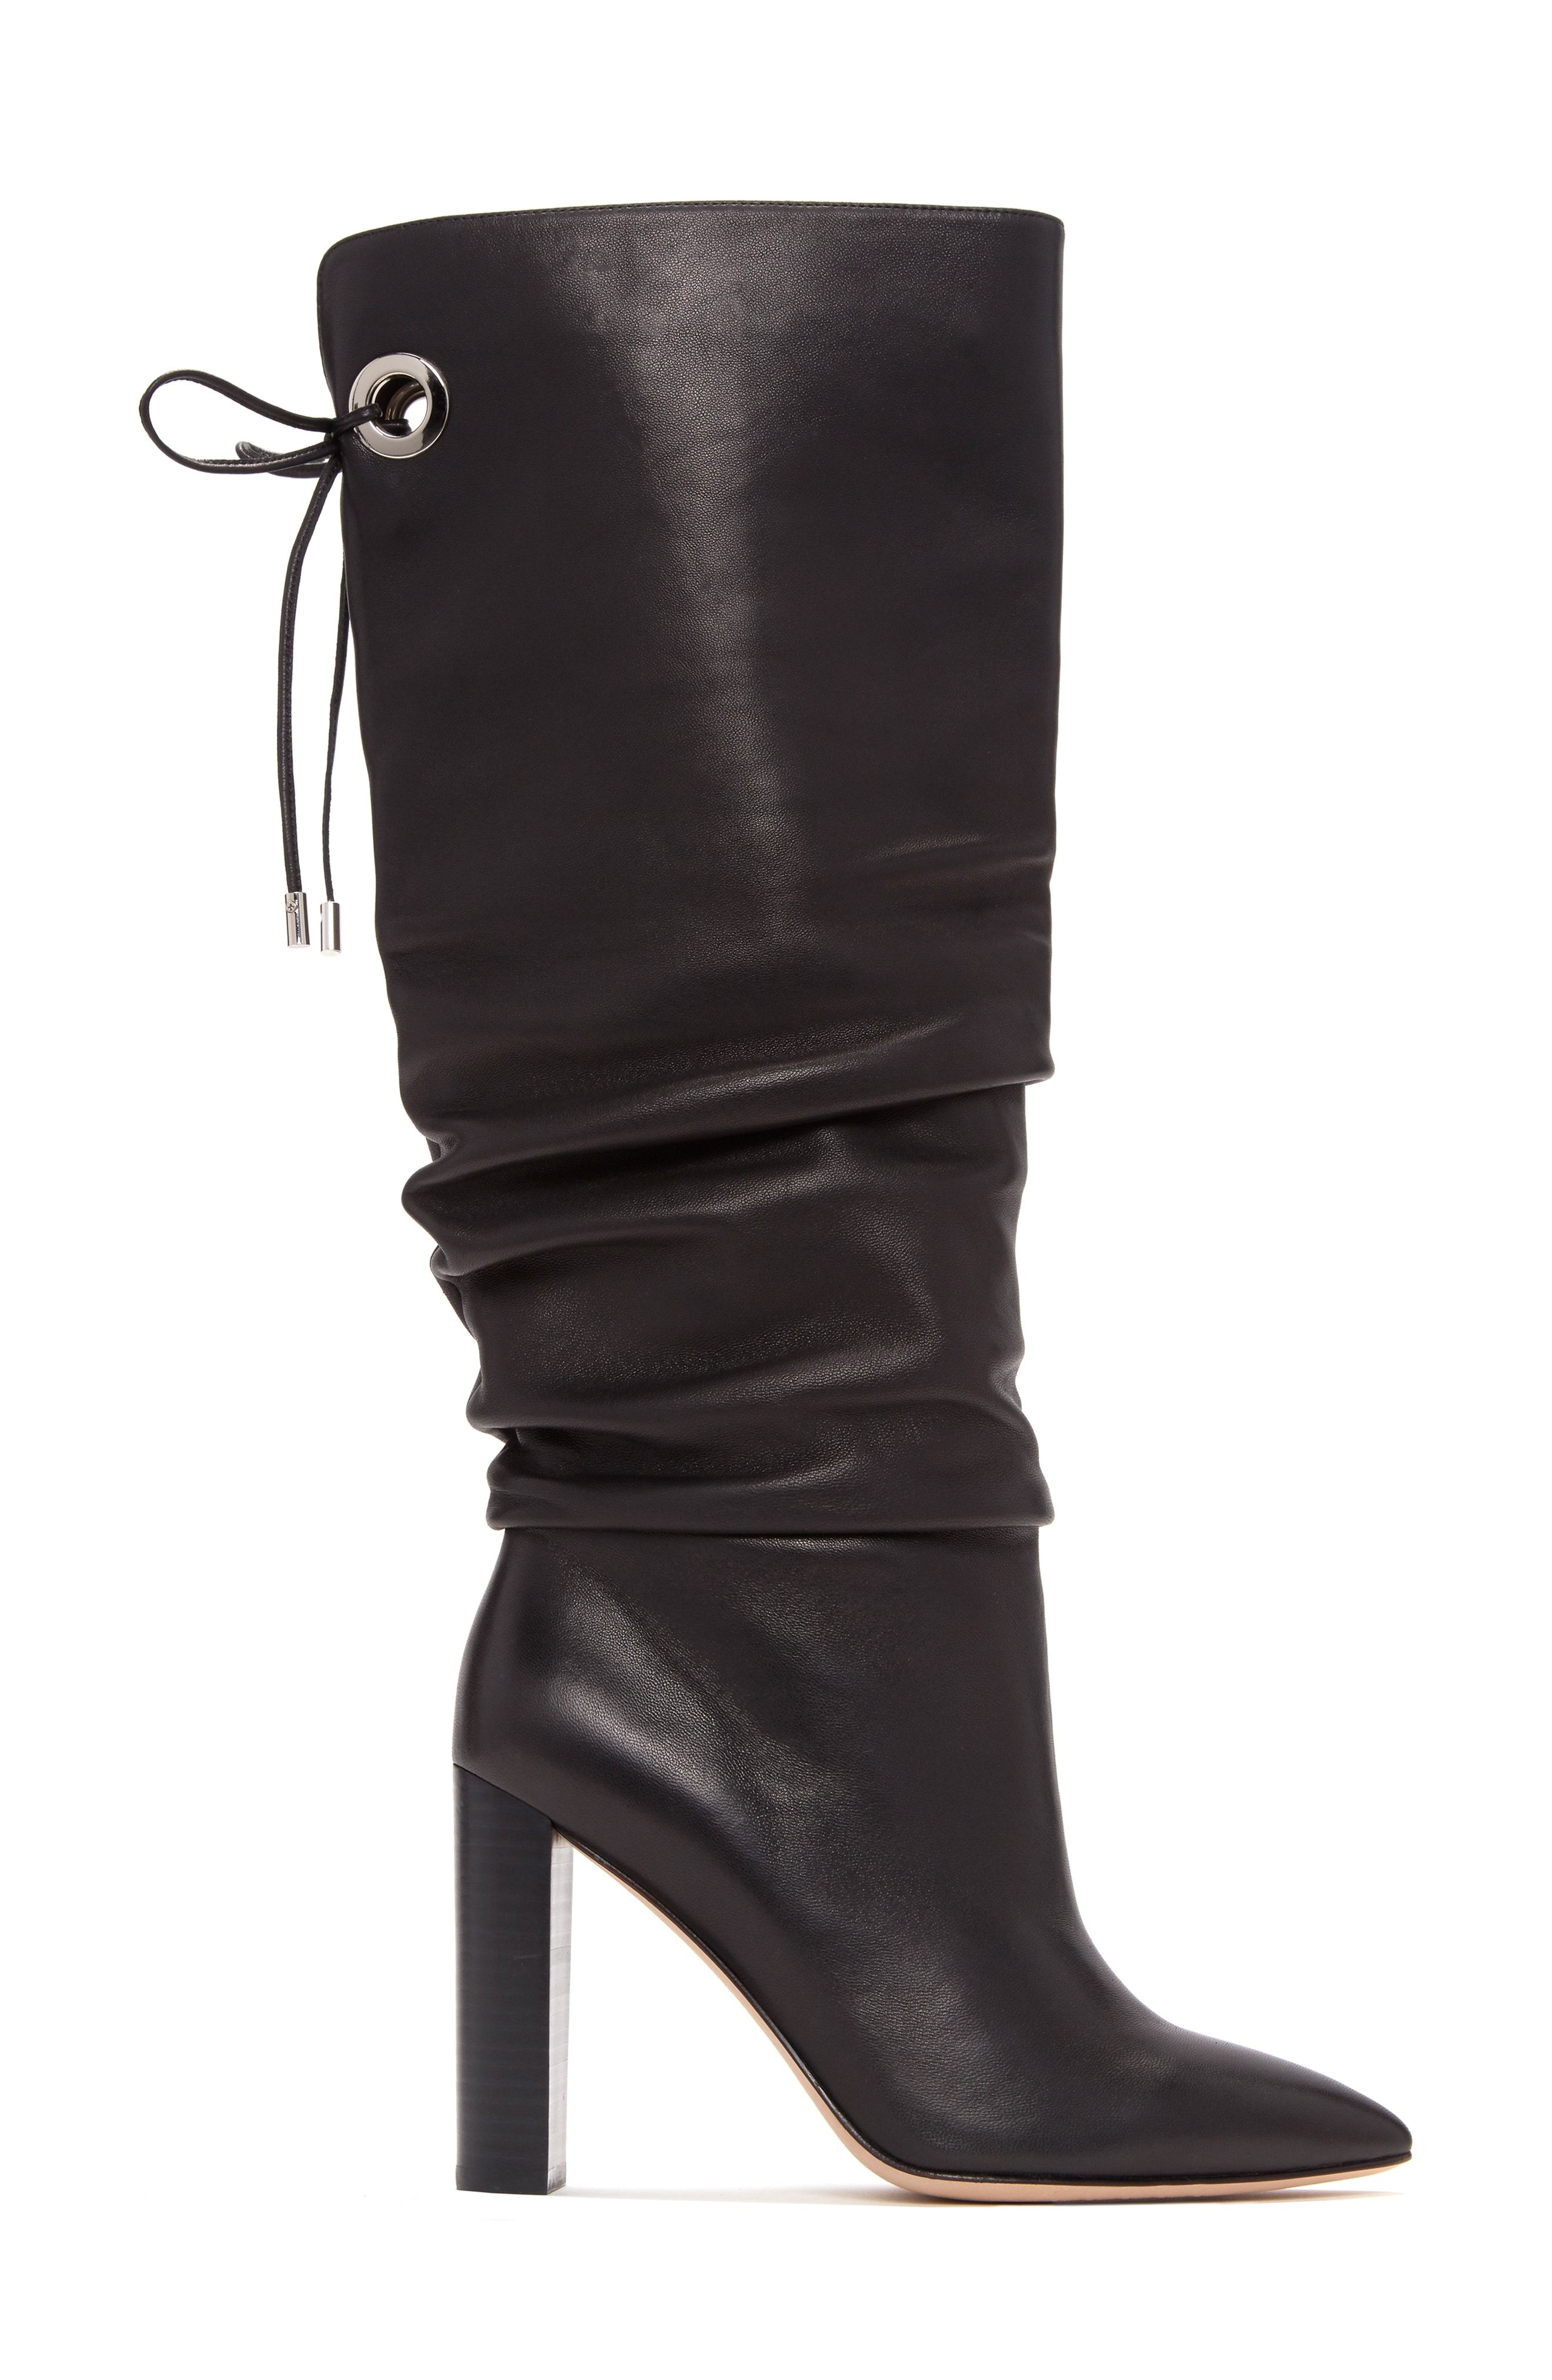 f1fce1b8c81 15 Best Knee High Boots for Fall - Knee High Boot Trend Fall 2018